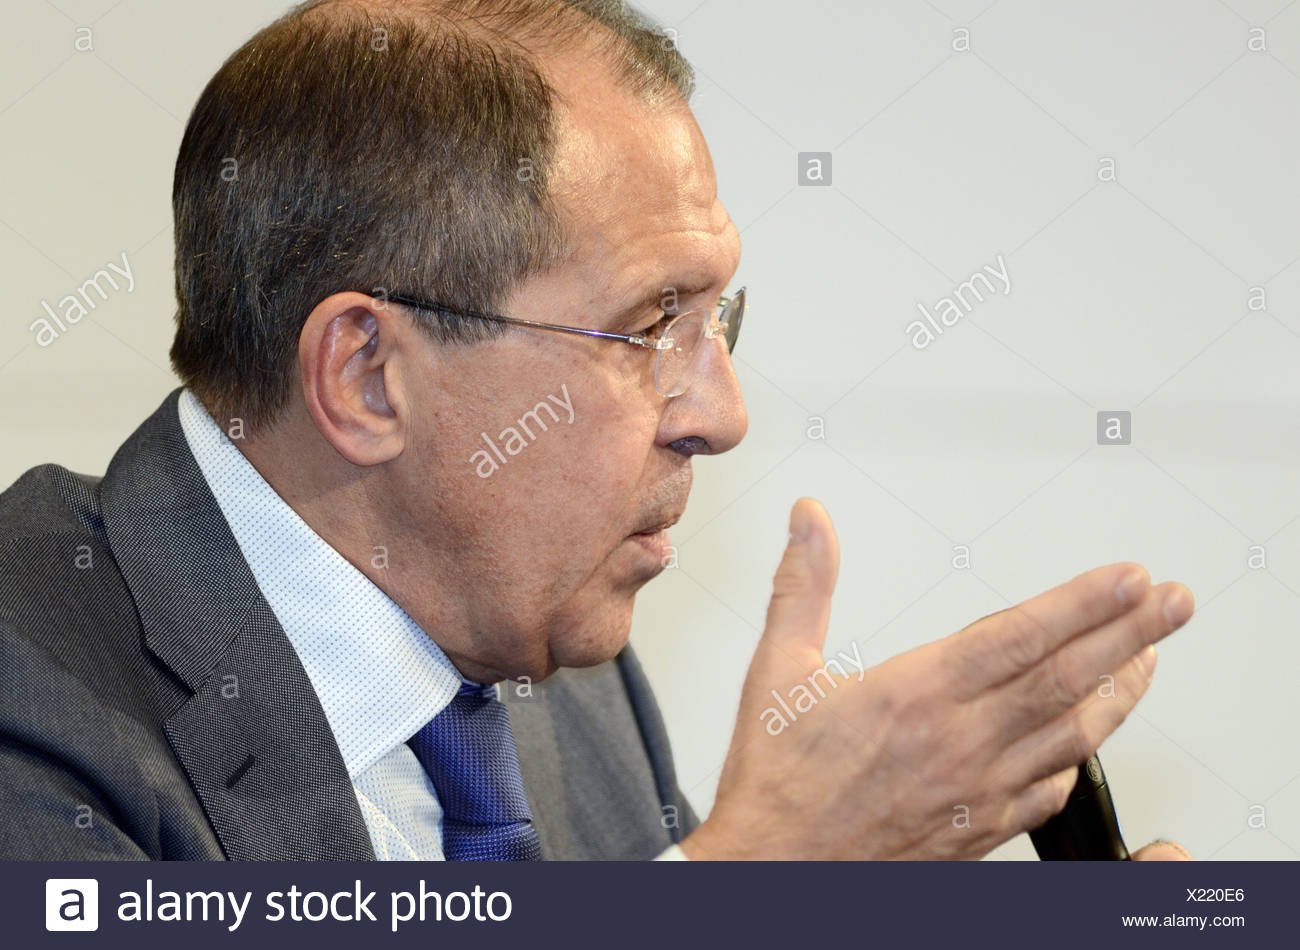 Lavrov, Sergey, * 21.3.1950, Russian politician, diplomat, foreign minister since 2004, portrait, members on the Munich Conference on Security Policy, Hotel Bayerischer Hof, Munich, Germany, 4.2.2012, Additional-Rights-Clearances-NA - Stock Image